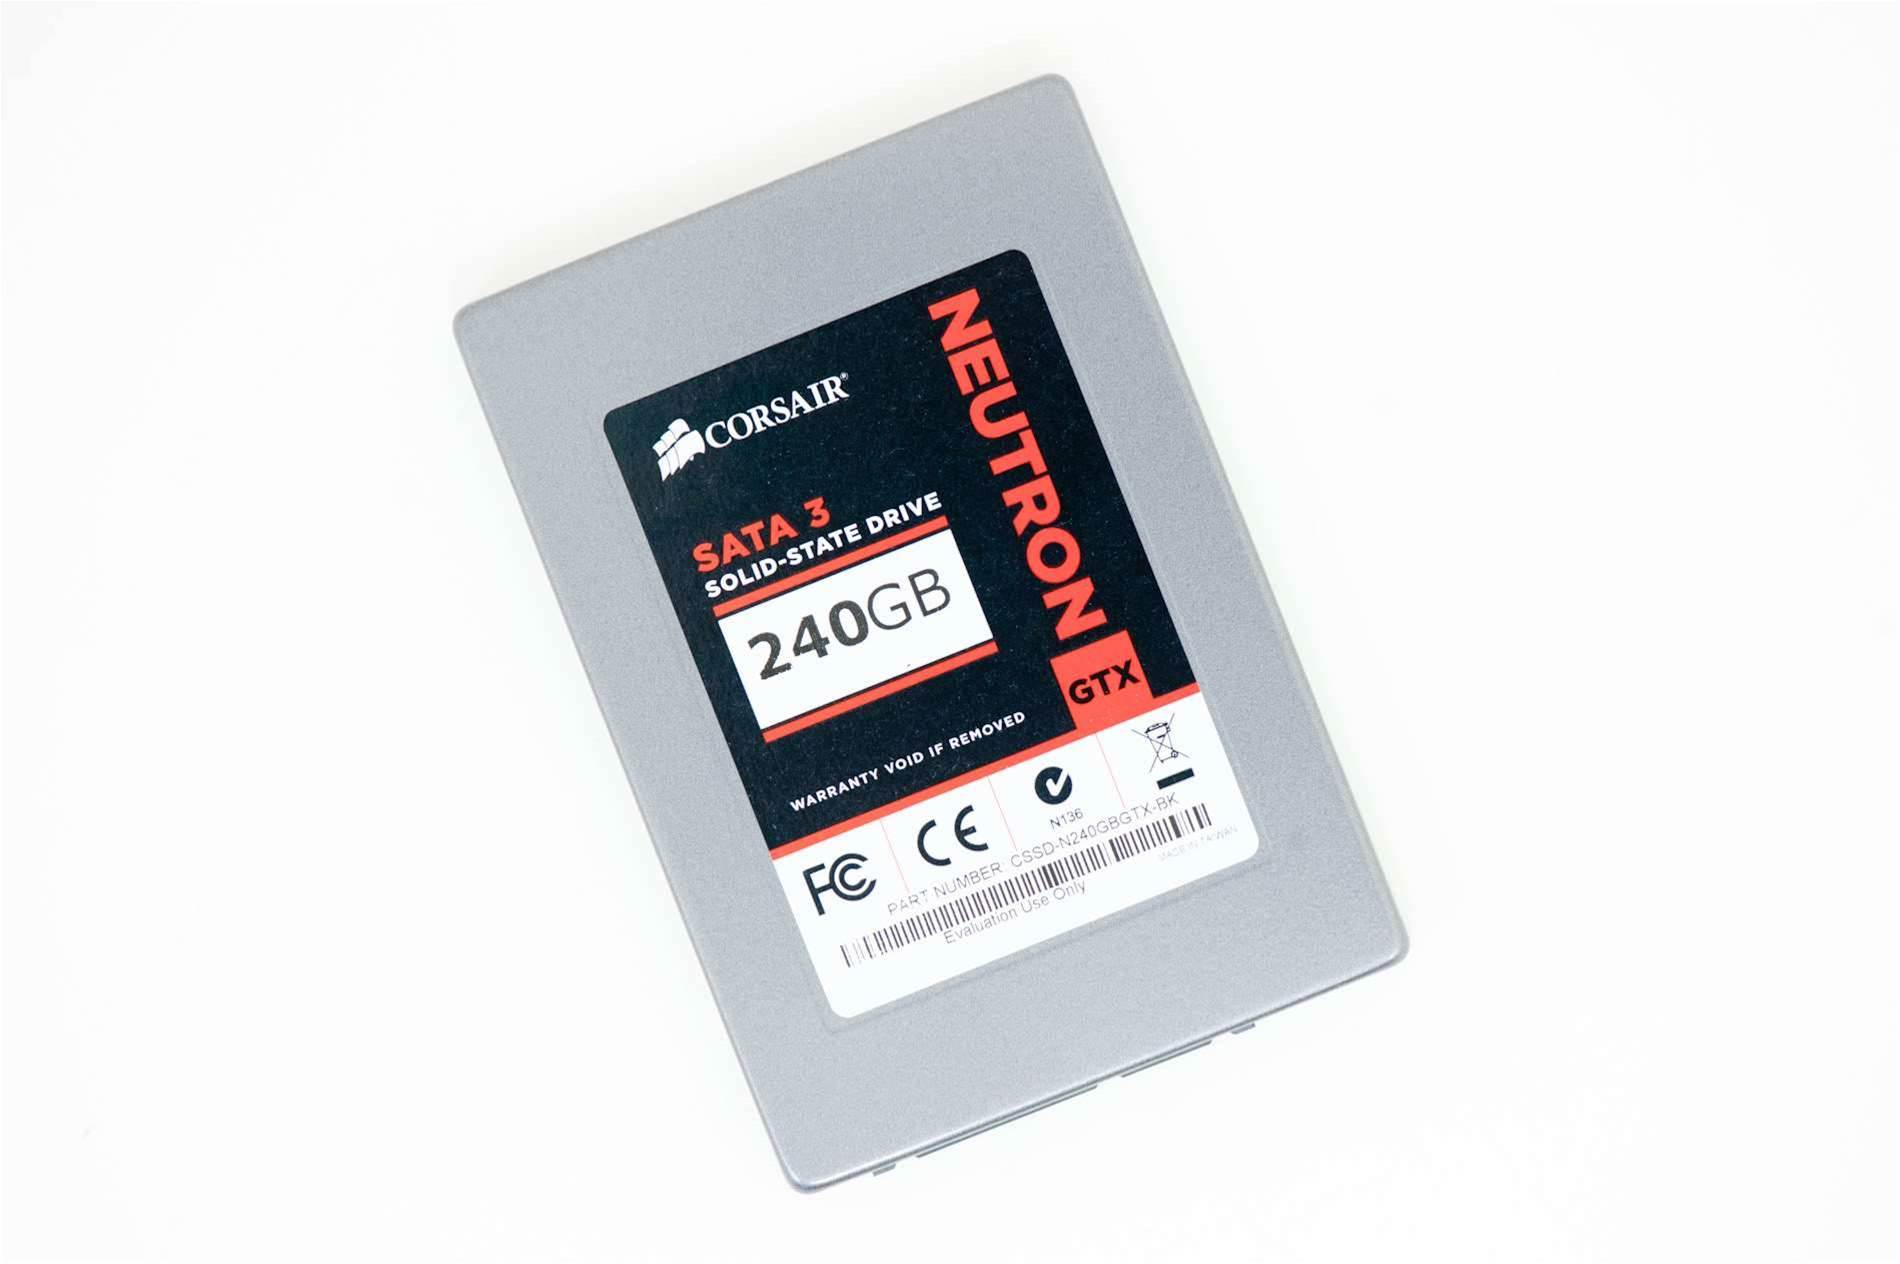 Corsair Neutron 240GB review